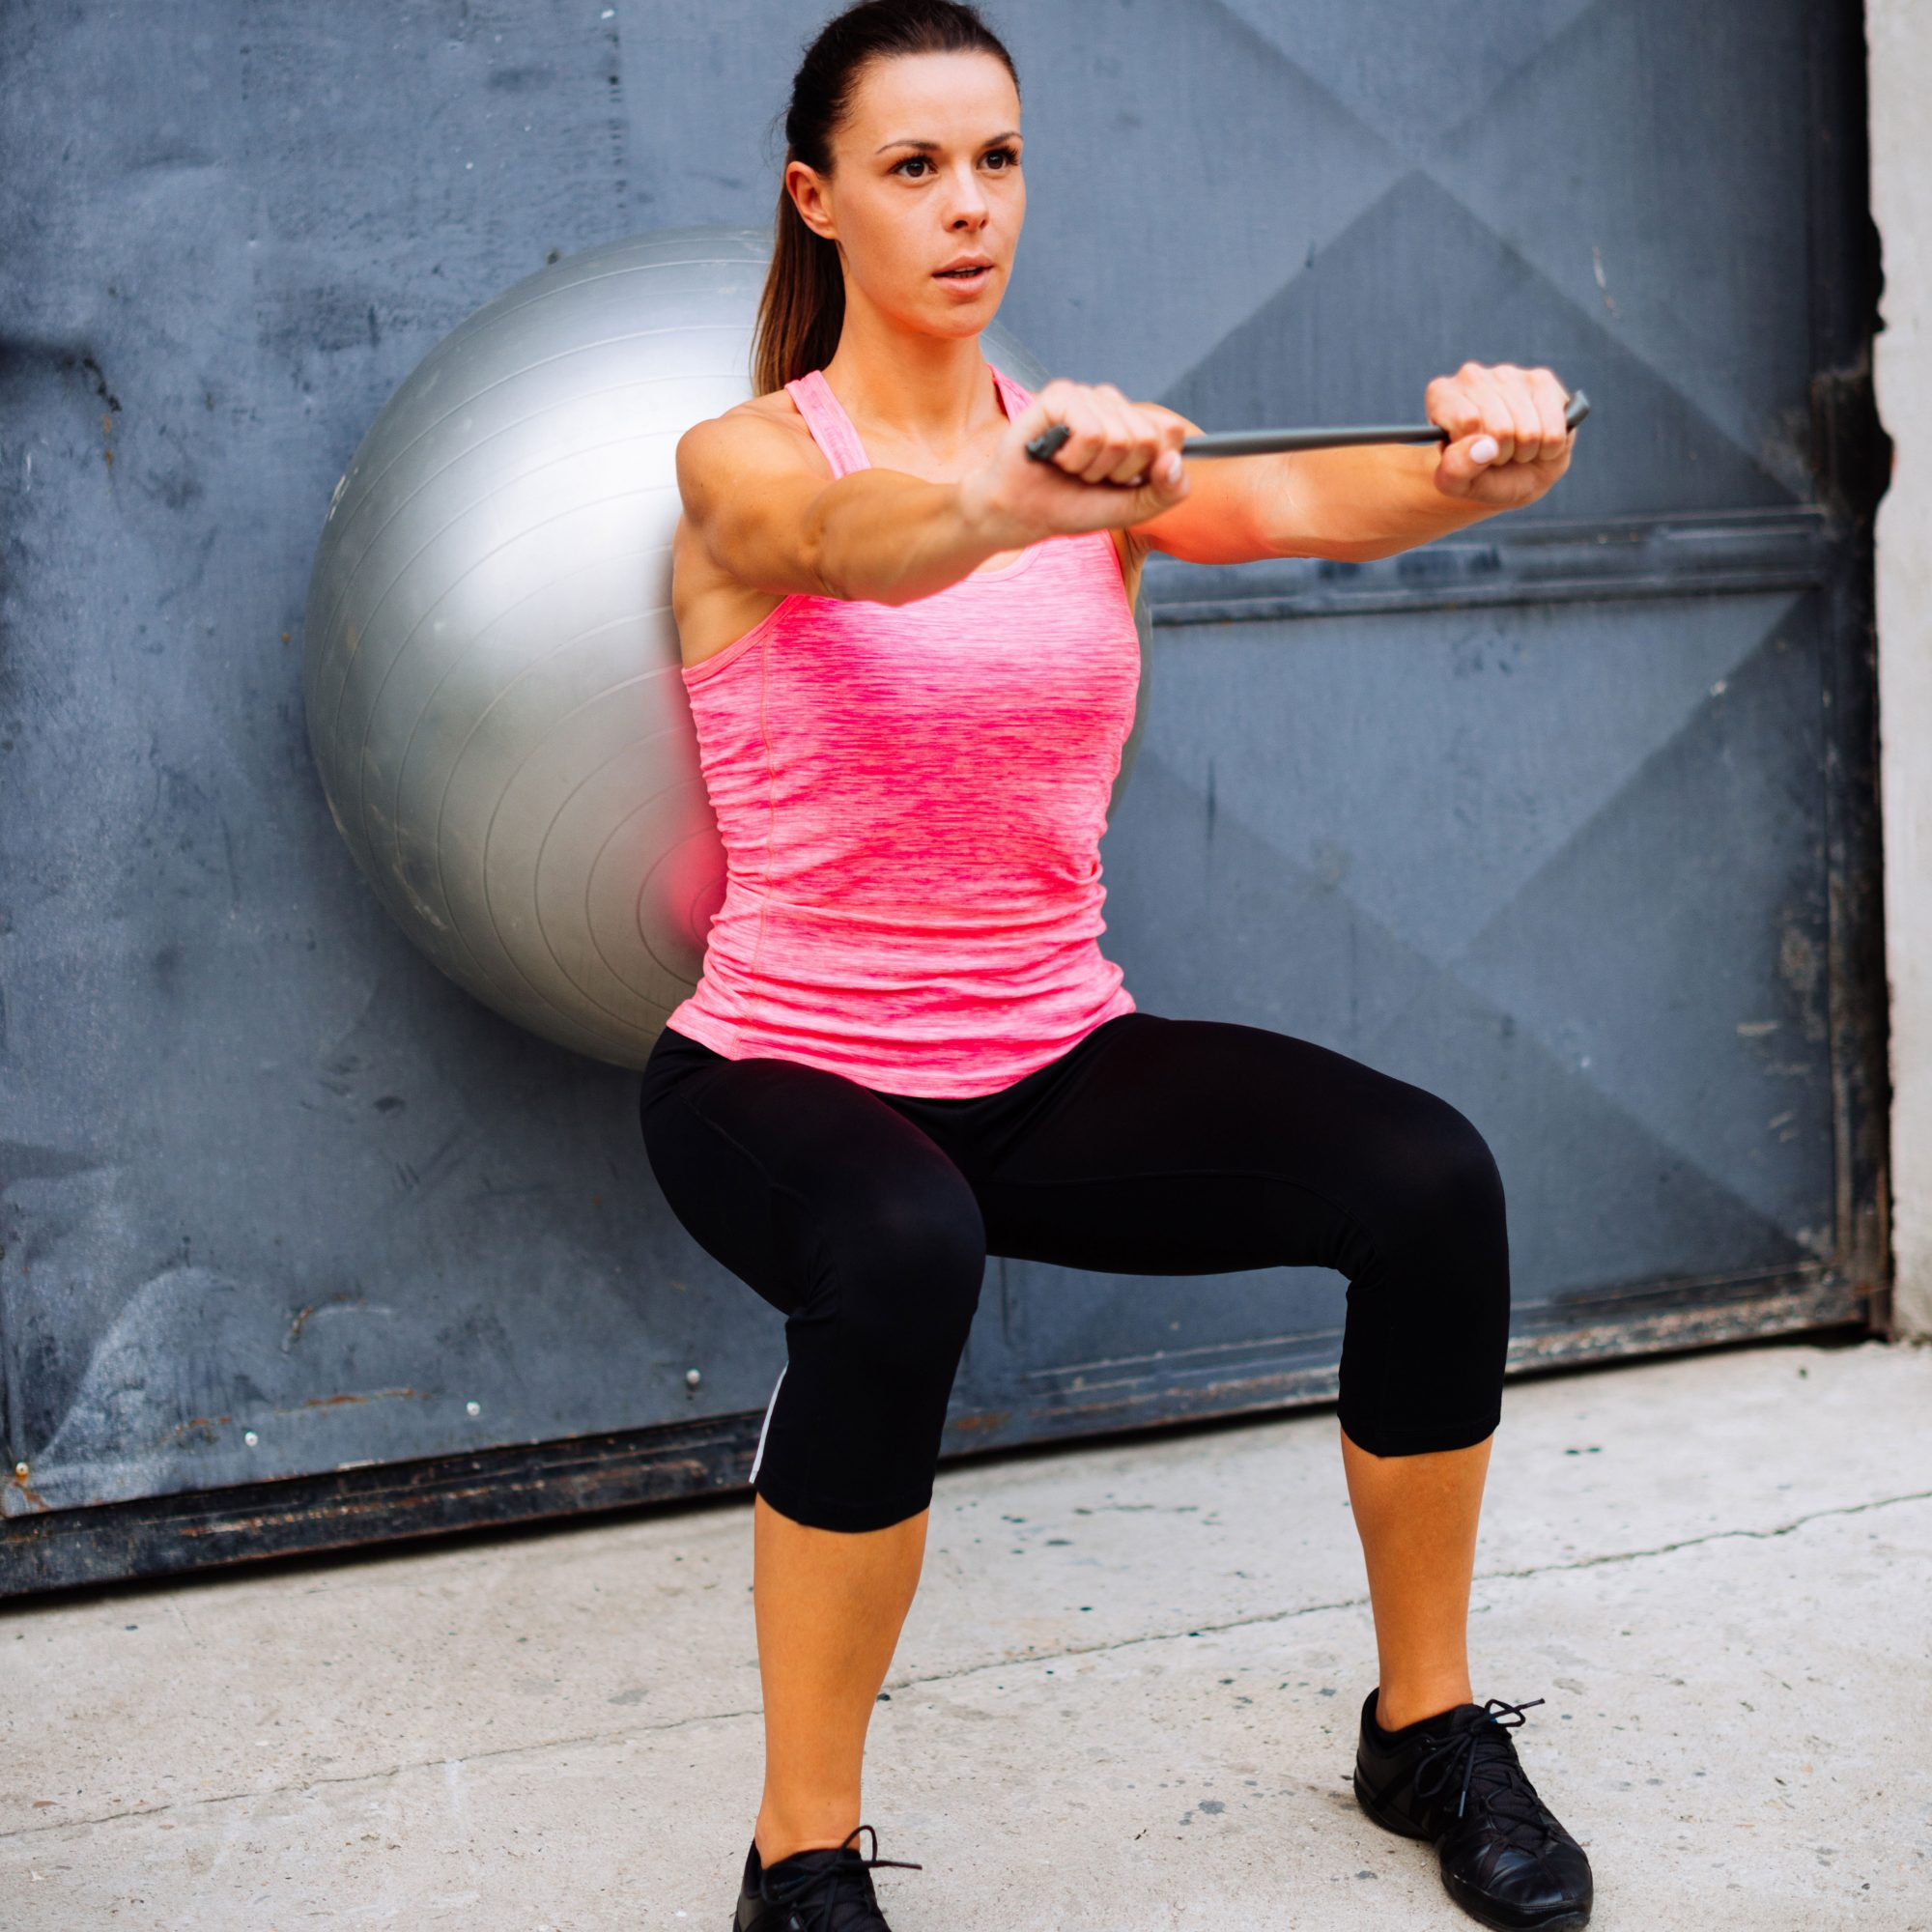 Woman_Doing_Wall_Squats_With_Swiss_Ball